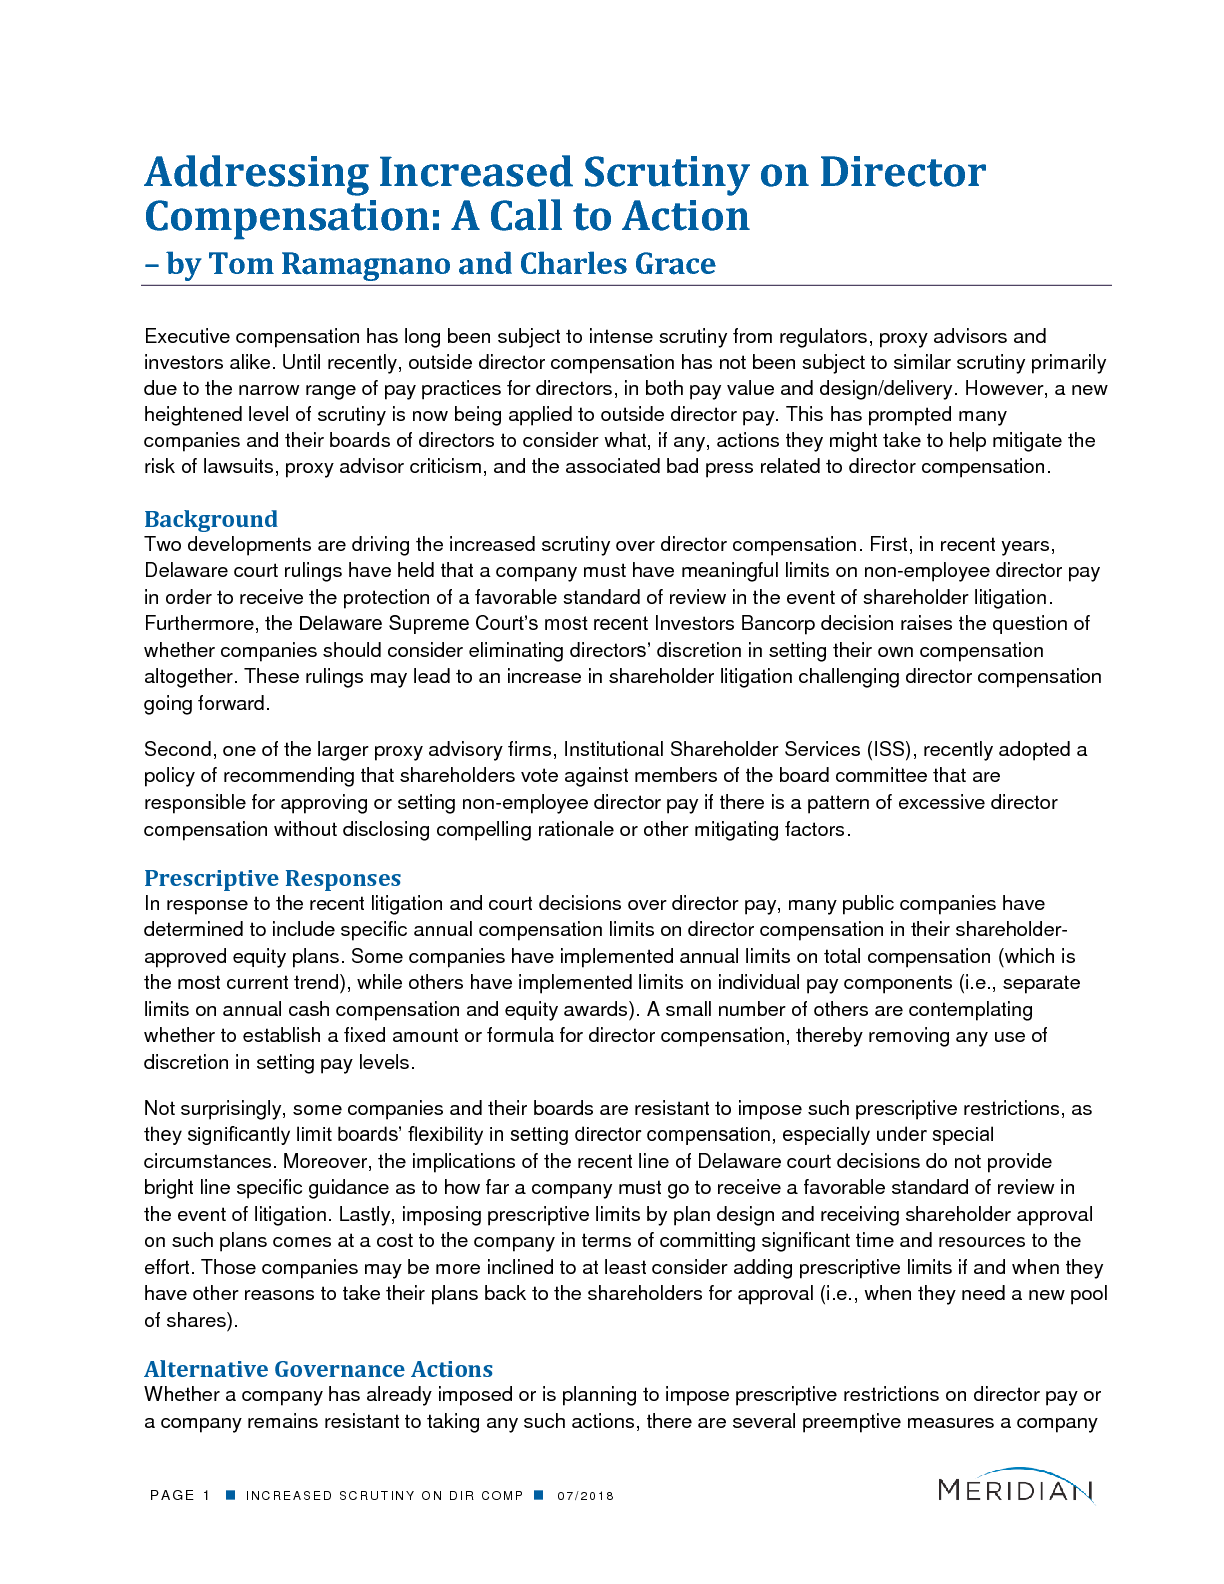 Addressing Increased Scrutiny on Director Compensation: A Call to Action (PDF)